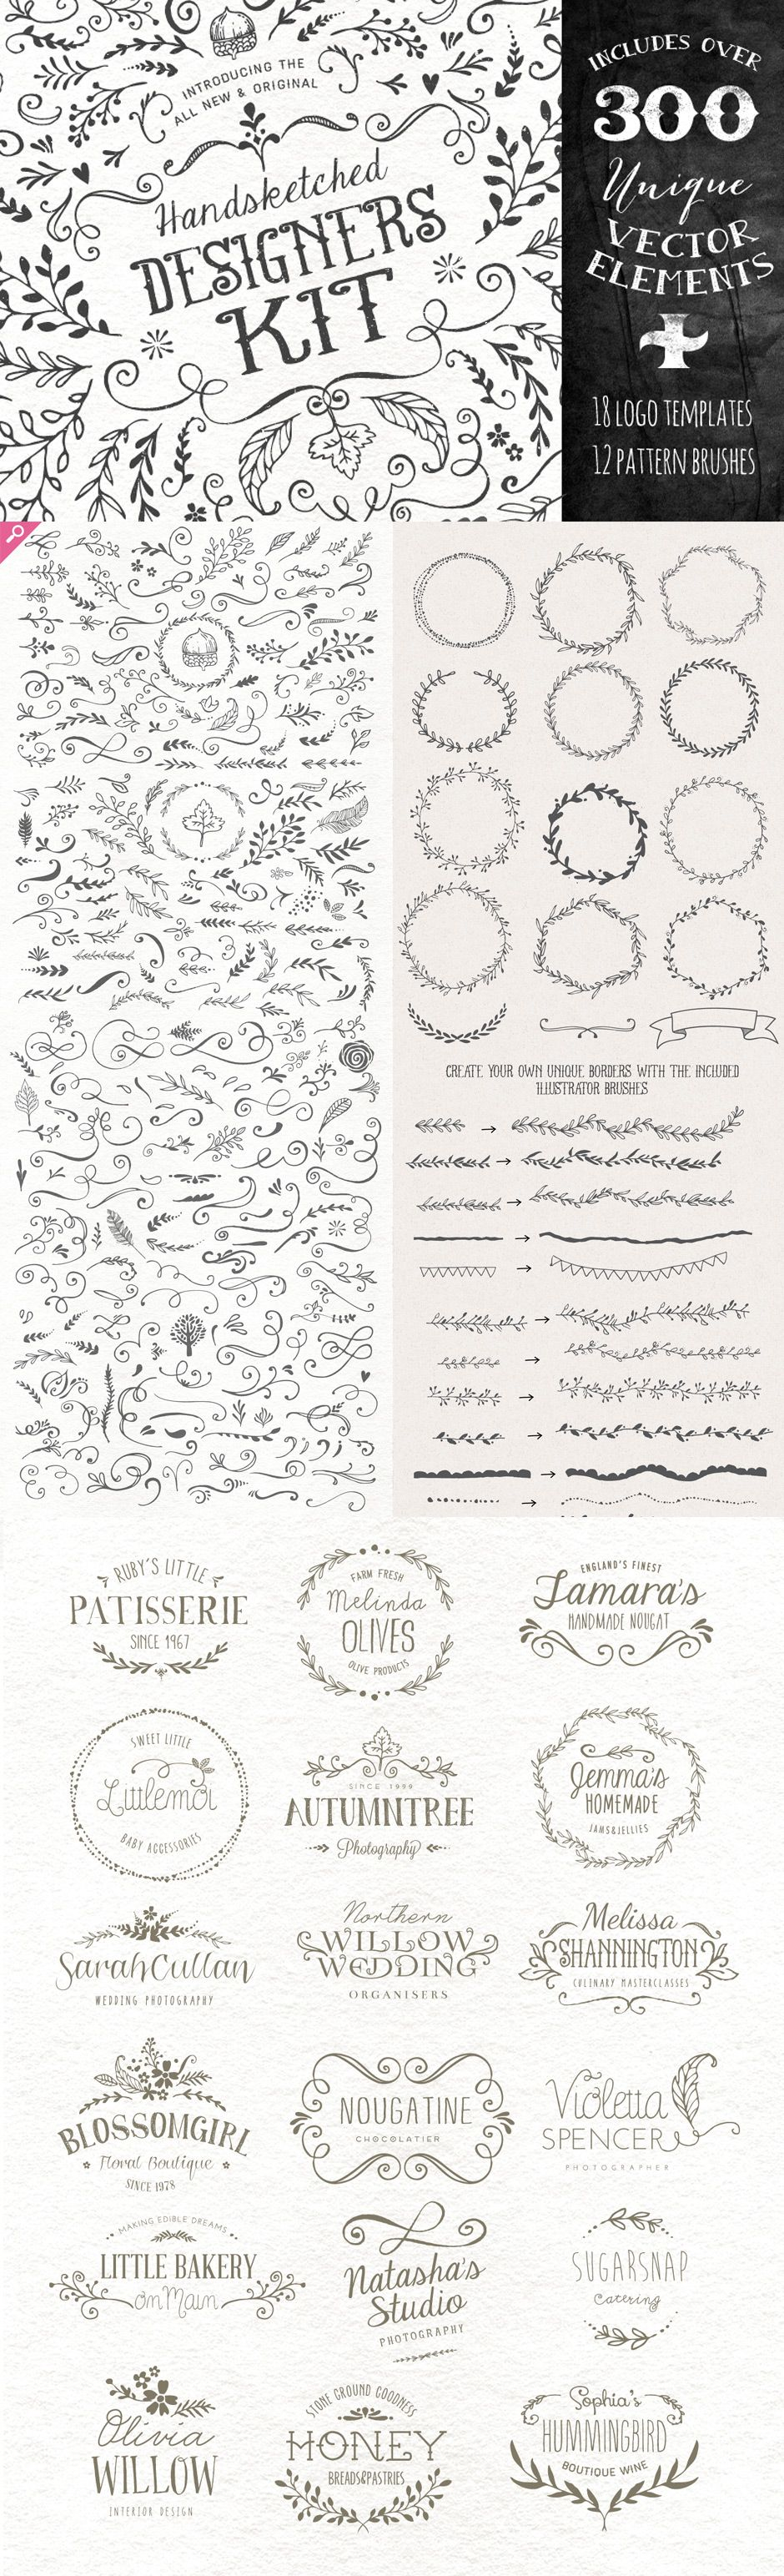 best images about crafty on pinterest gardens fonts and uxui